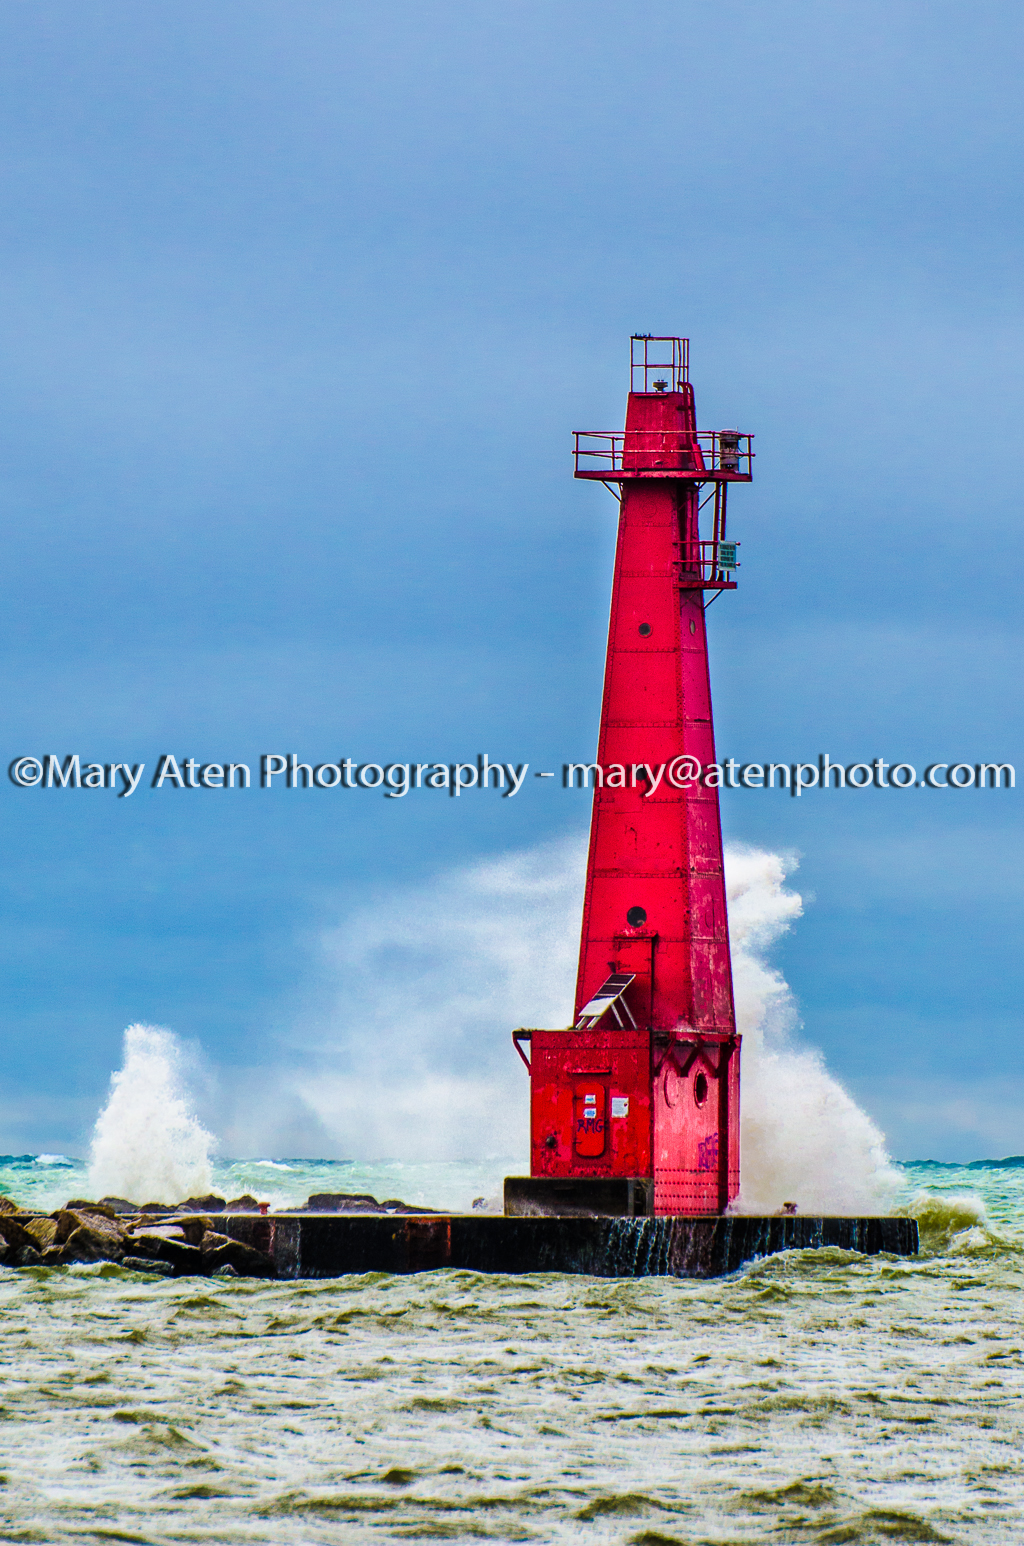 Photo Of Muskegon Lighthouse With Wave Spray Behind Lighthouse